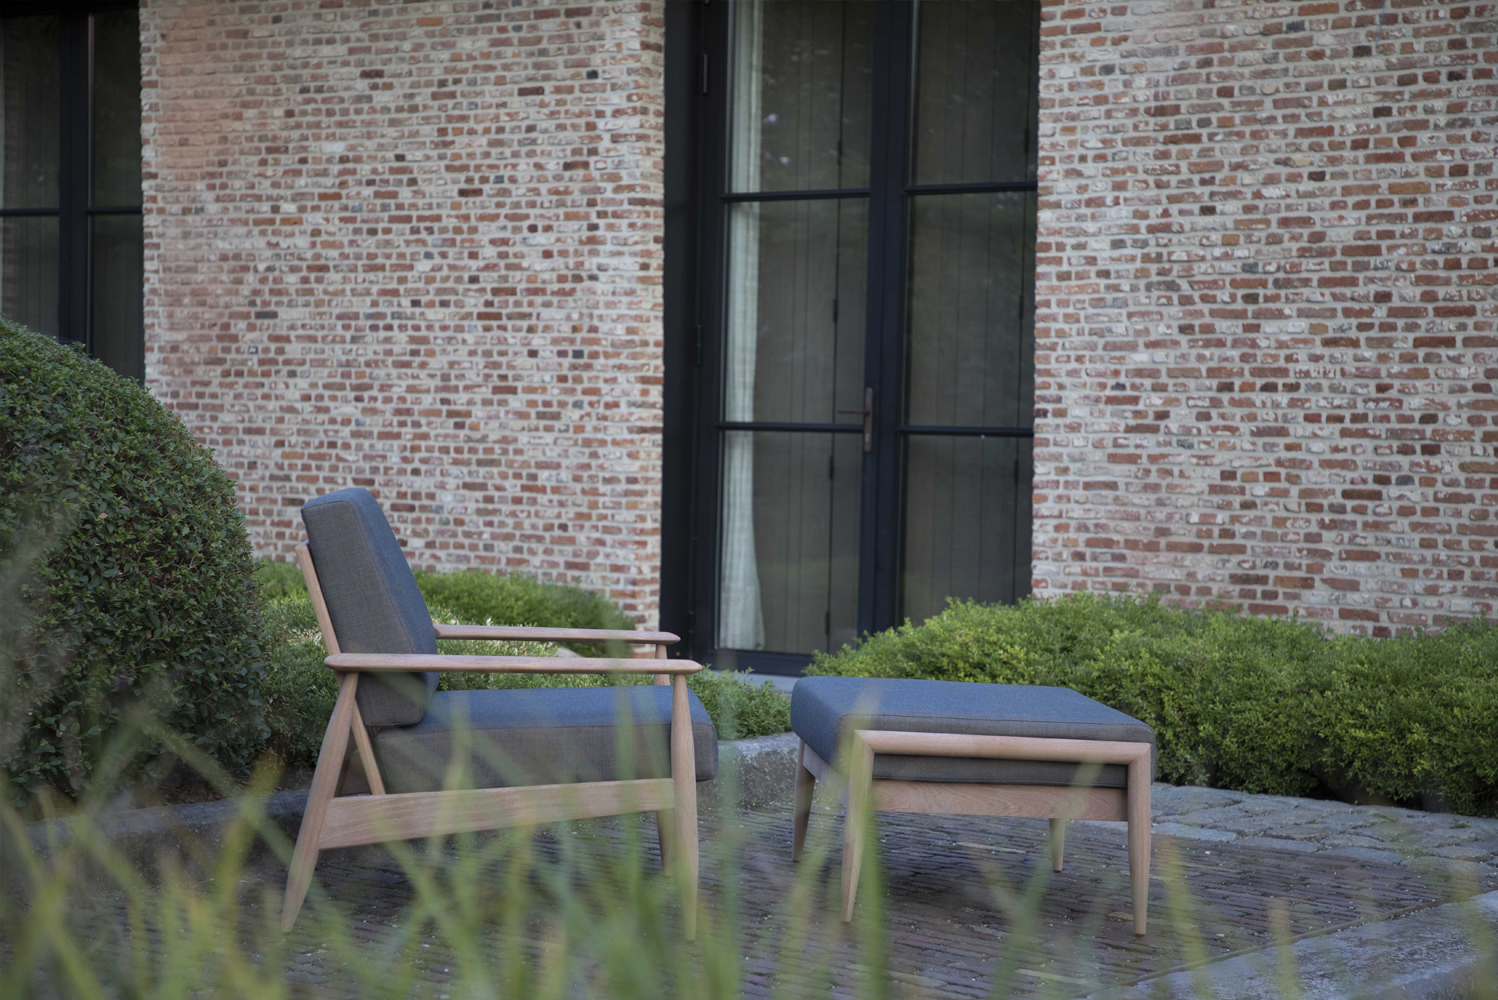 The collection includes Scandinavian style lounge chair and ottoman for indoor-outdoor use.